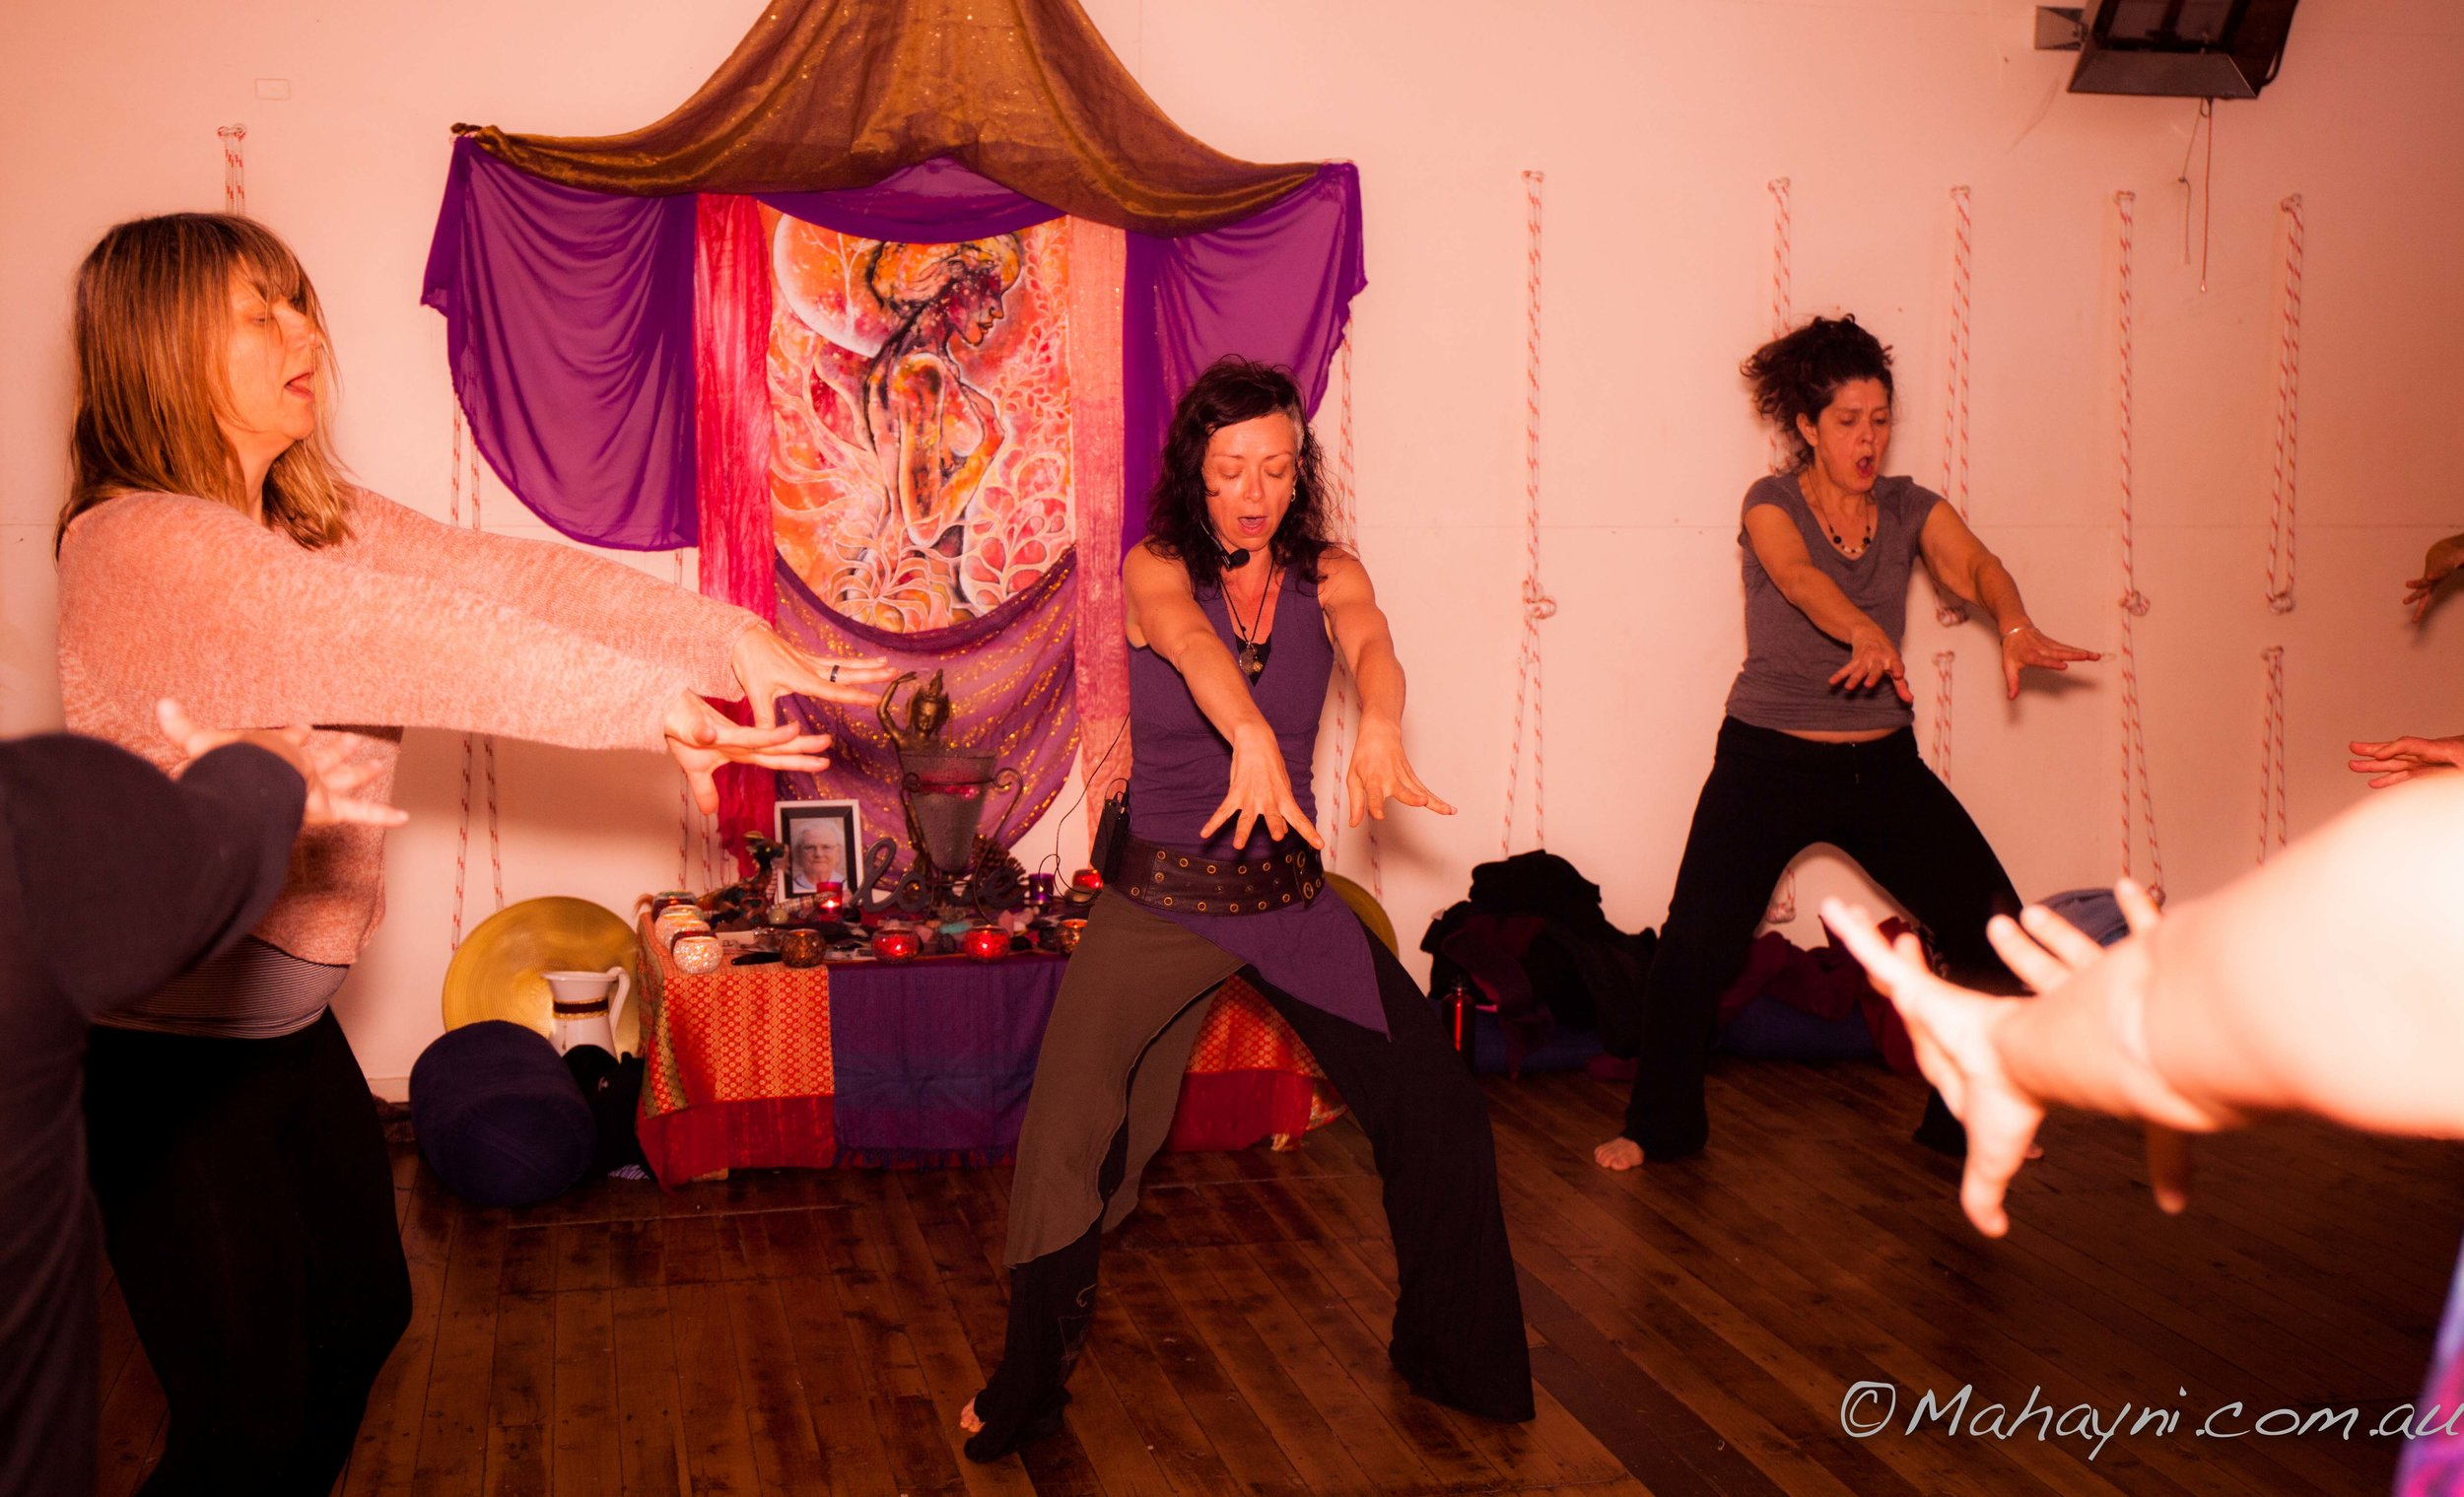 Cultivate sexual energy. Tara Fischer and Alison Petrie